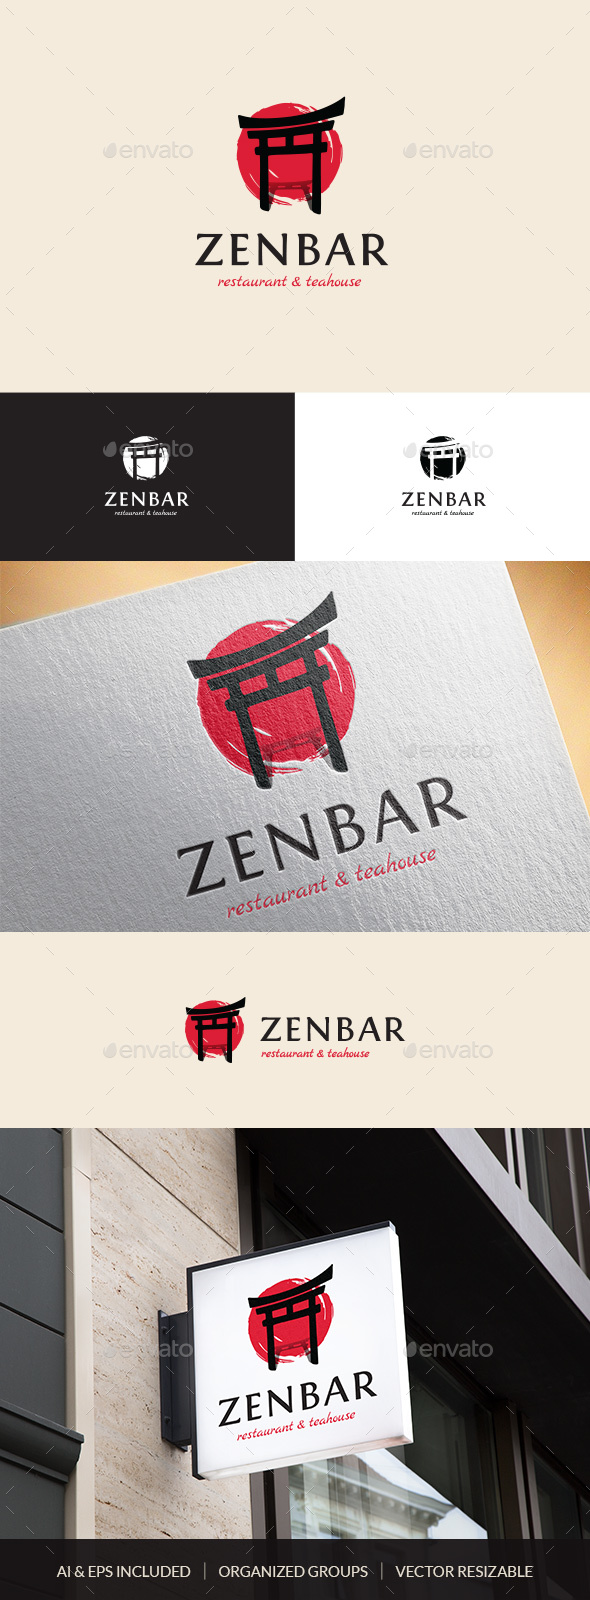 ZenBar Asian Restaurant & Teahouse Logo Template - Company Logo Templates